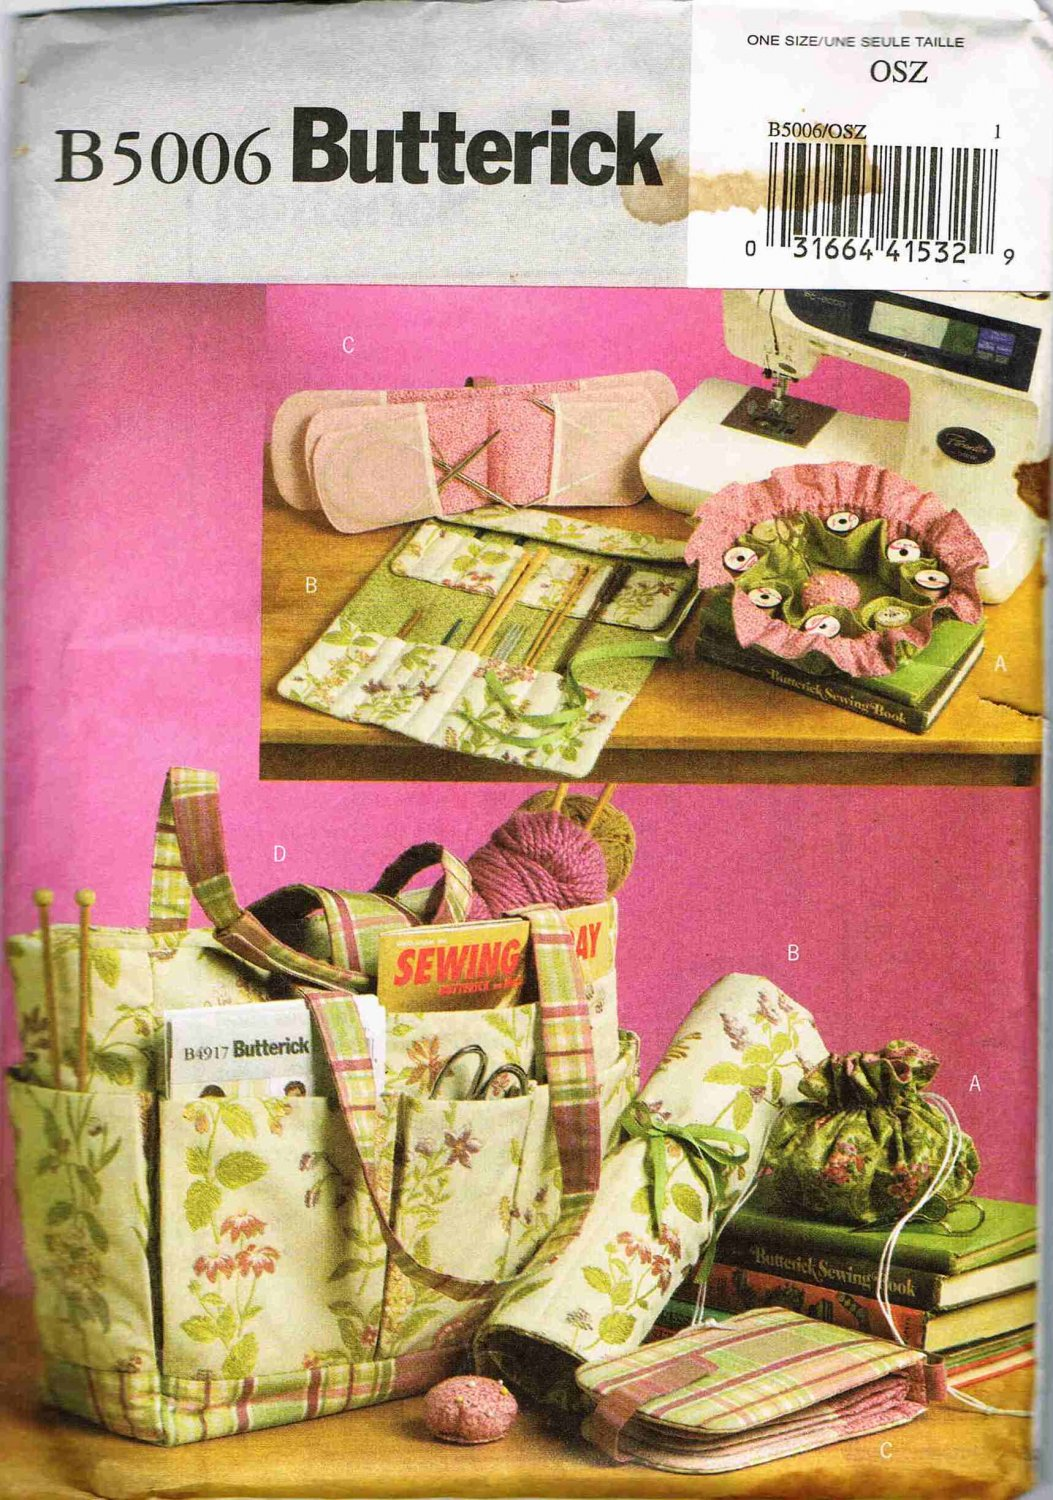 Butterick Craft Sewing Pattern B5006 Sewing Knitting Crochet Tote Bag Pouch Case UNCUT